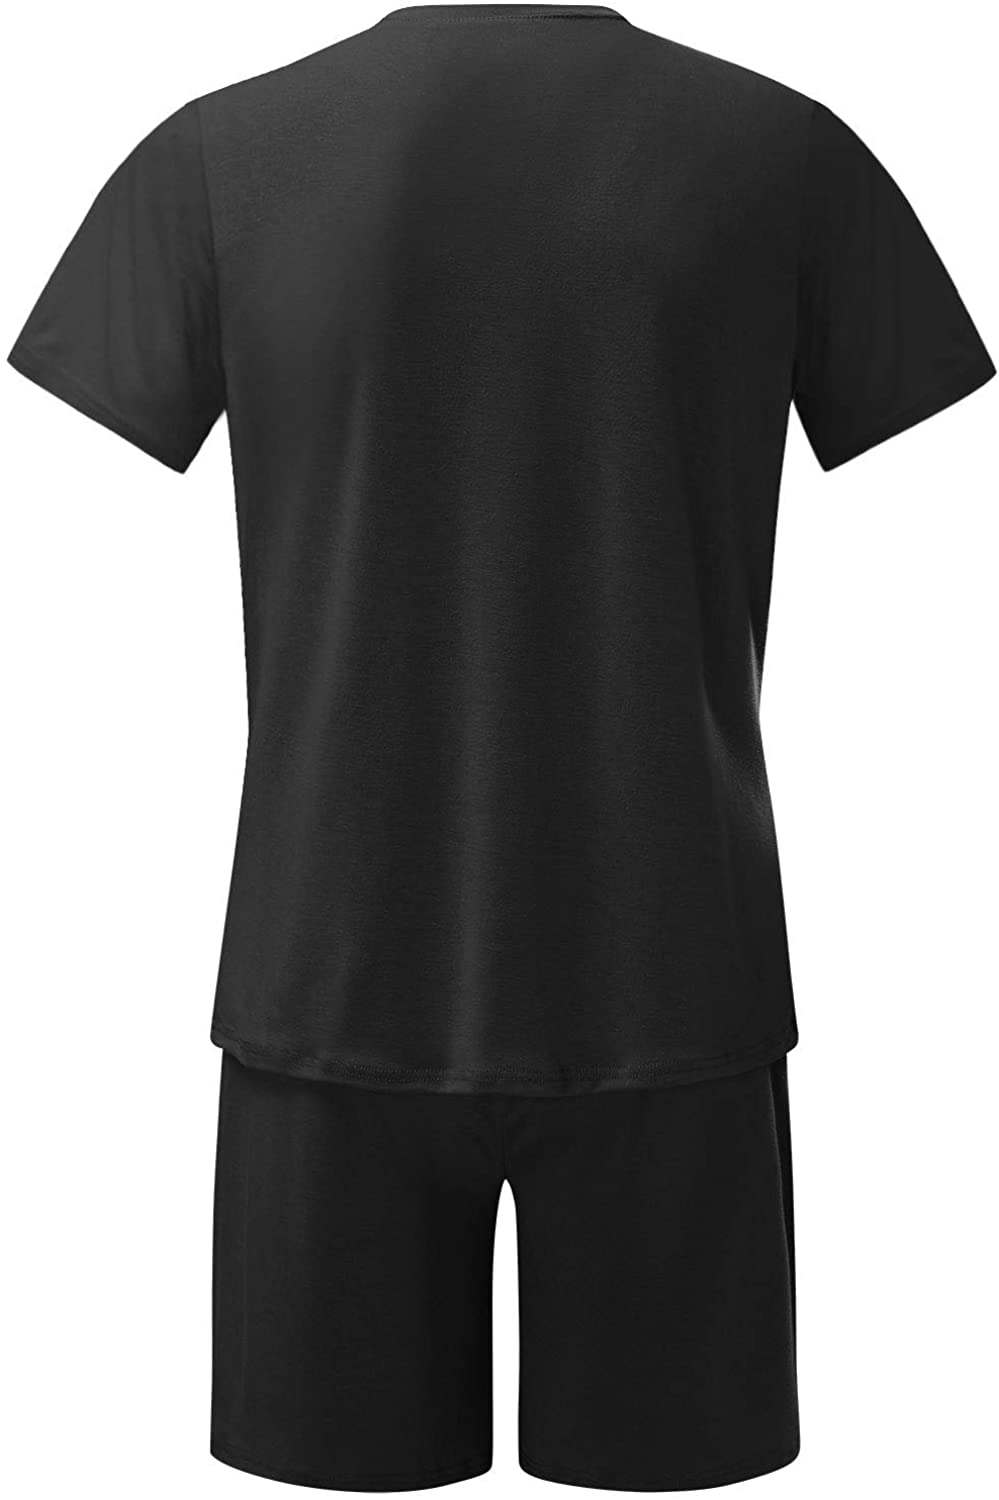 WOCACHI Mens Sports Set Plus Size, 2021 Summer Outfits 2 Piece Set T Shirts and Shorts Casual Sweatsuit Set Tracksuits